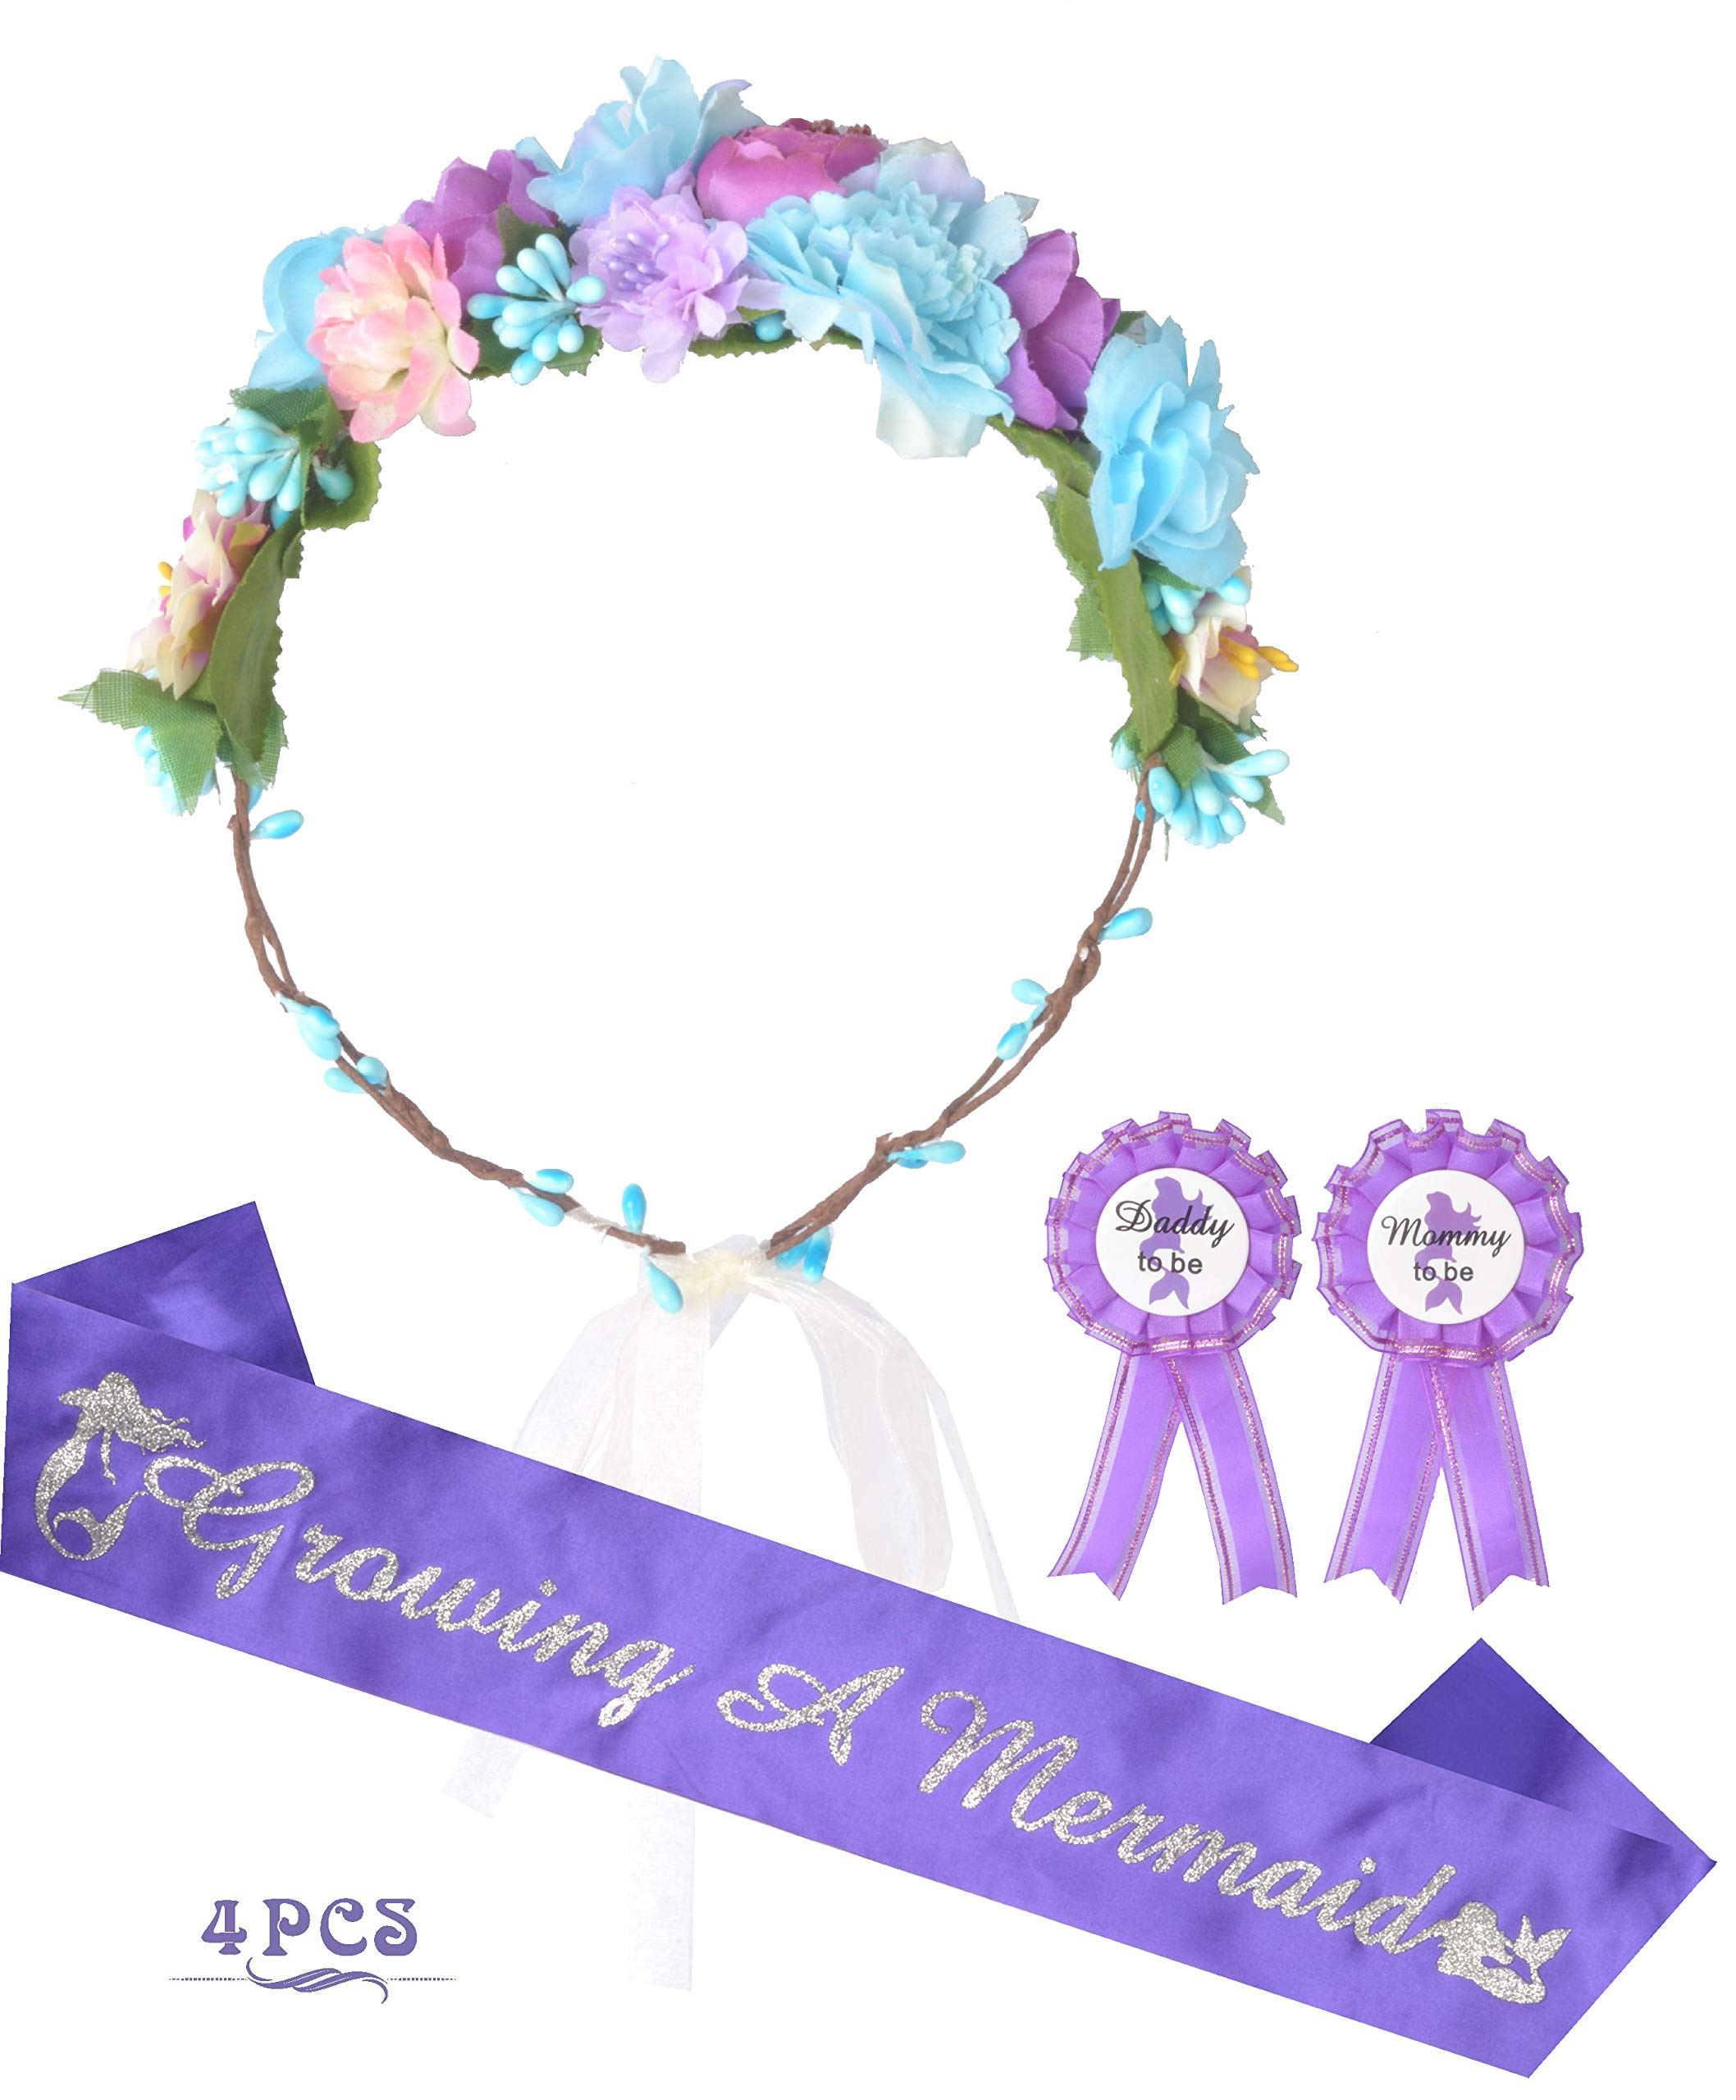 Mother to Be Flower Crown Purple Set, Growing a Mermaid Sash and Mommy to be Pin, Dad to Be Pin, Purple Baby Shower Party Favors Decorations Gift for Girl by MEANT2TOBE